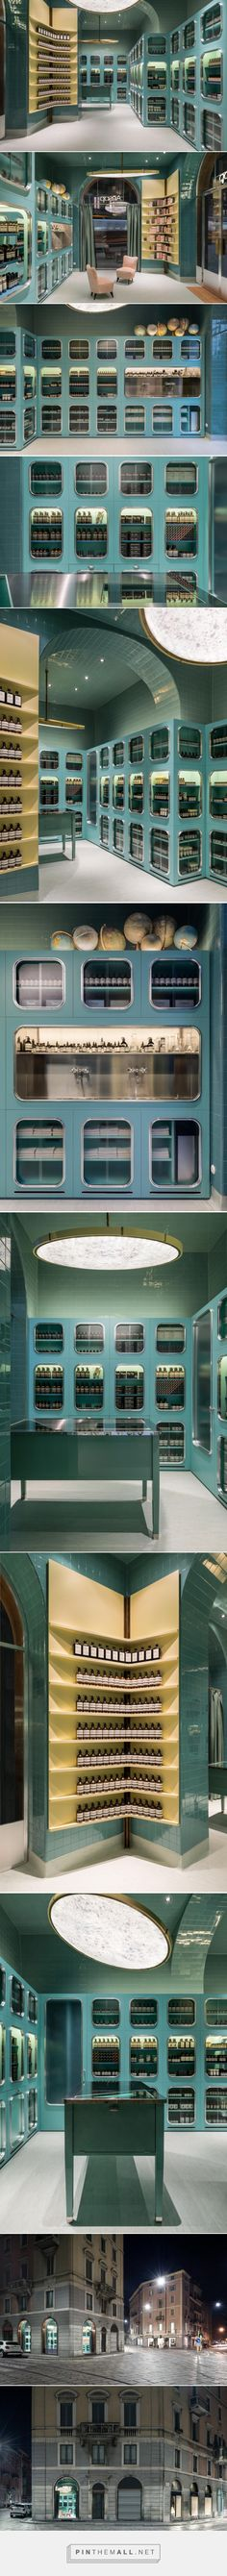 aesop by dimore studio references italian bottegas in milan - created via https://pinthemall.net